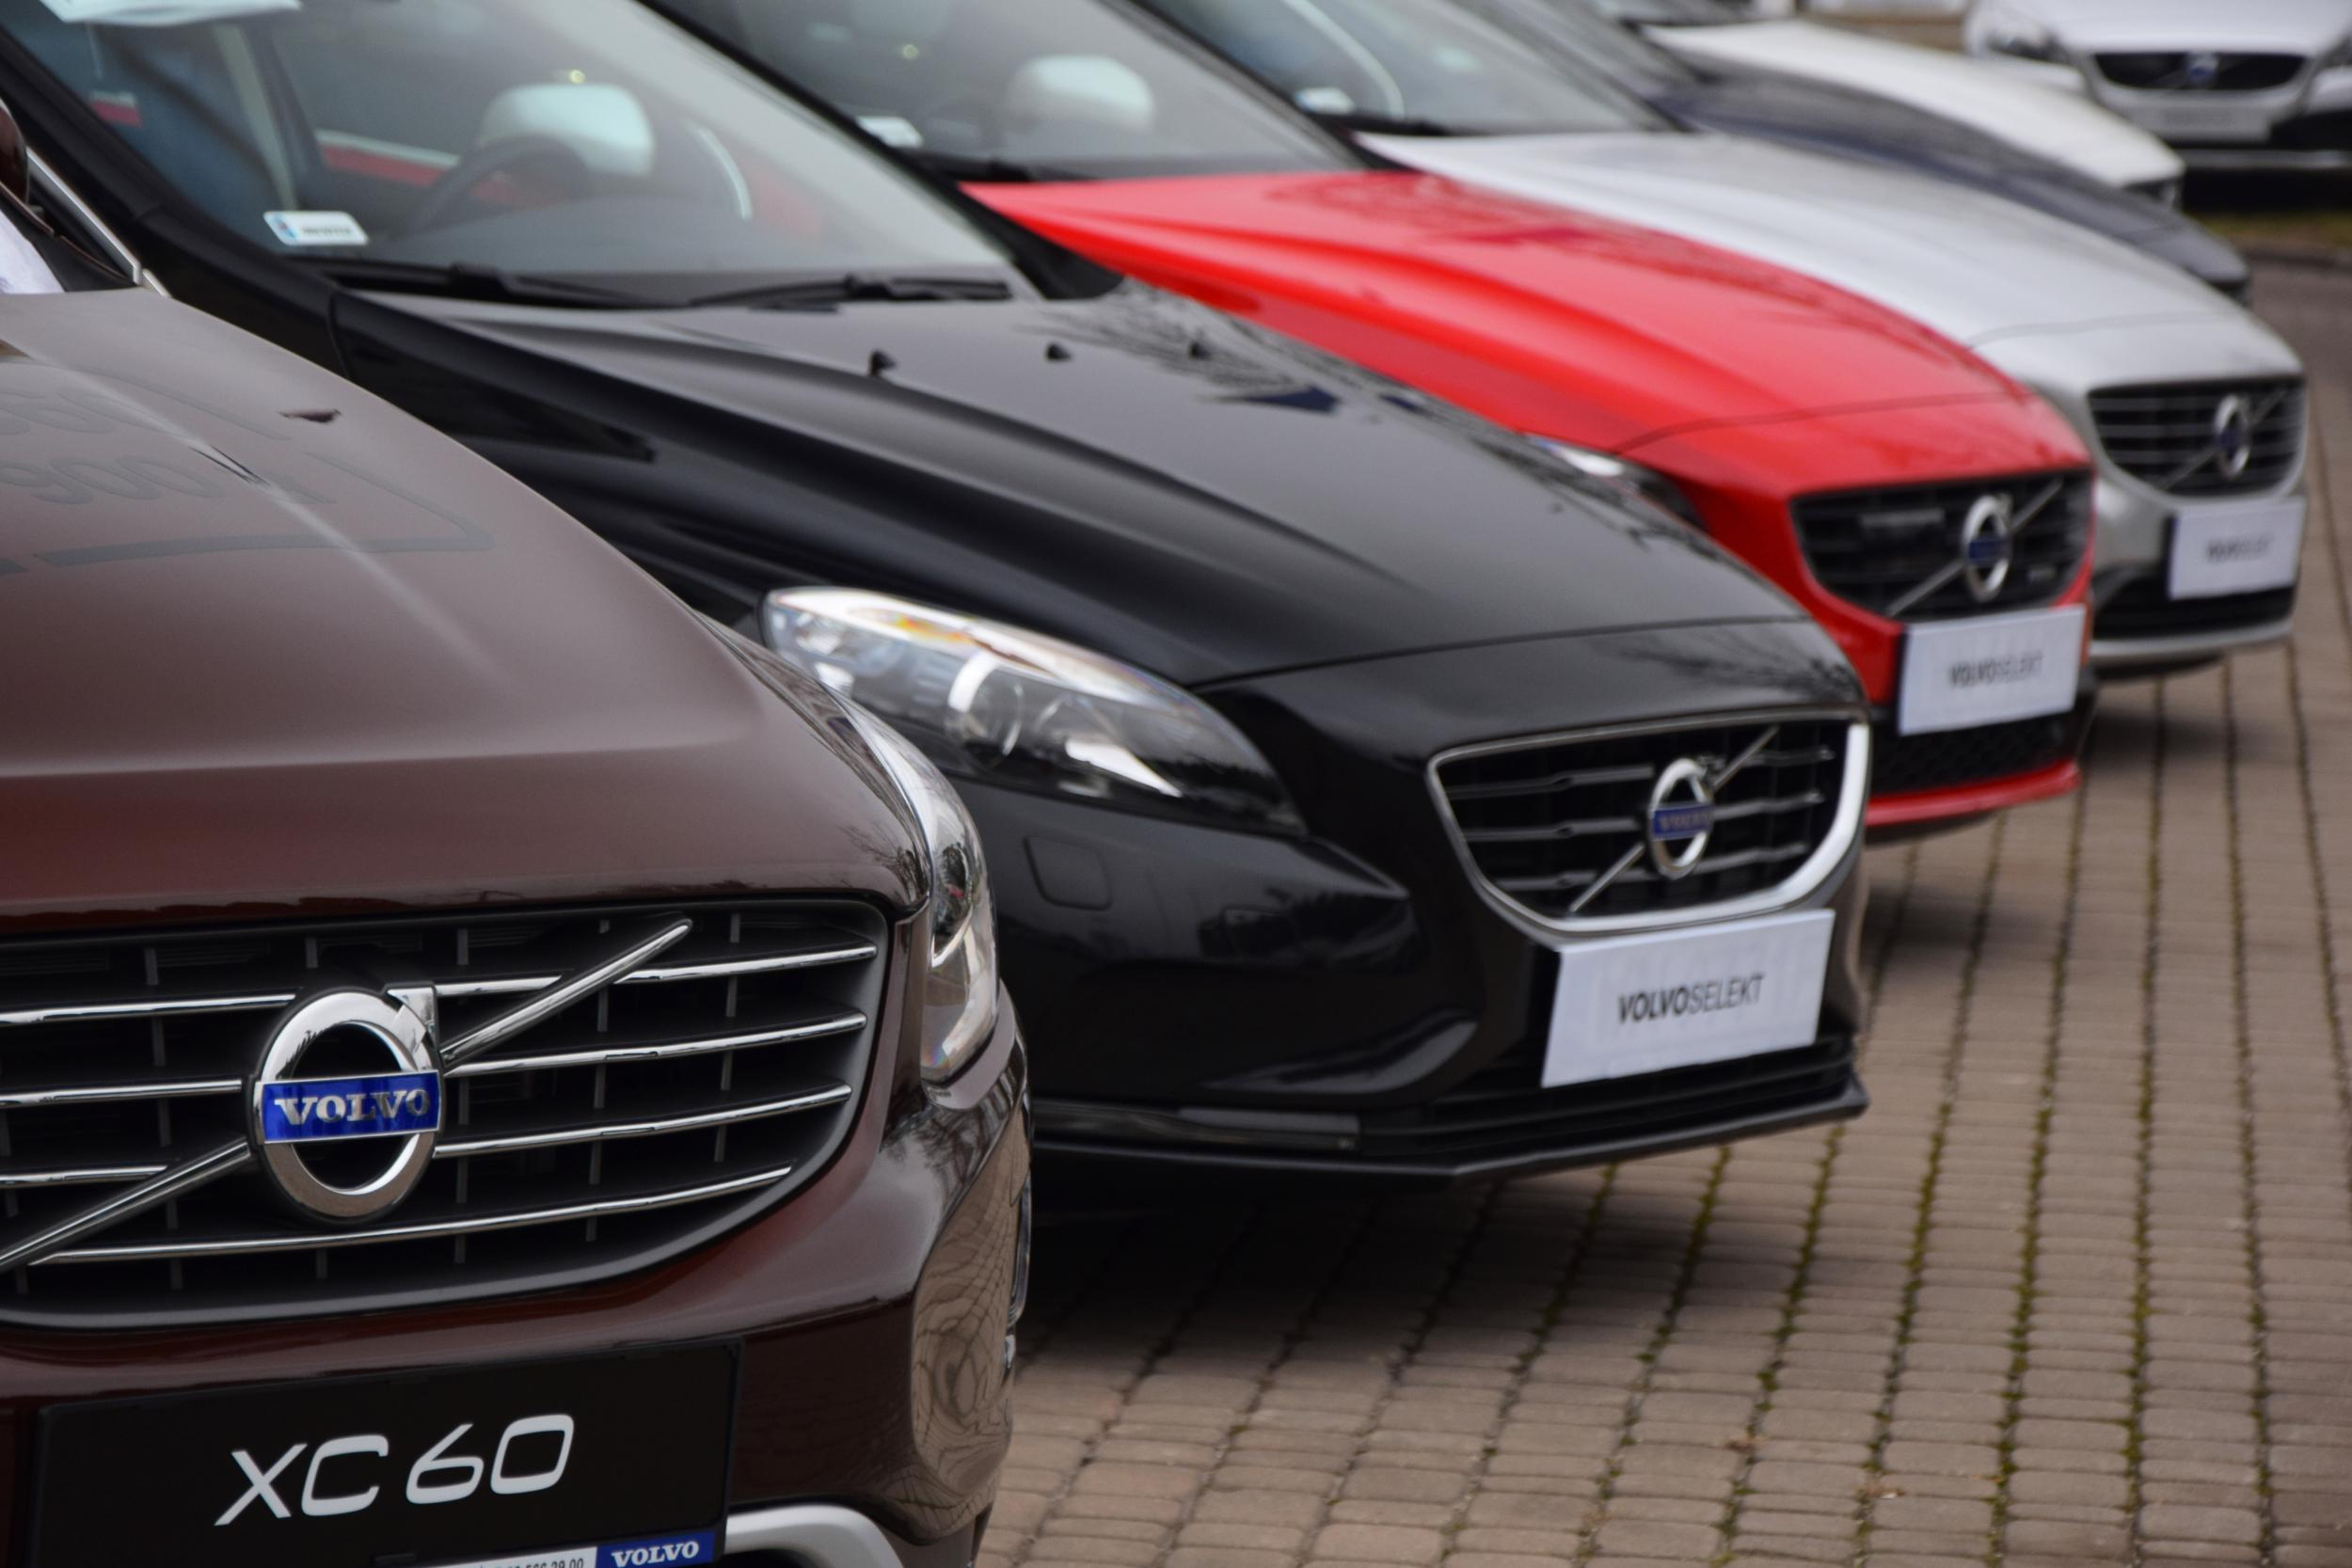 volvo - latest news, breaking stories and comment - the independent